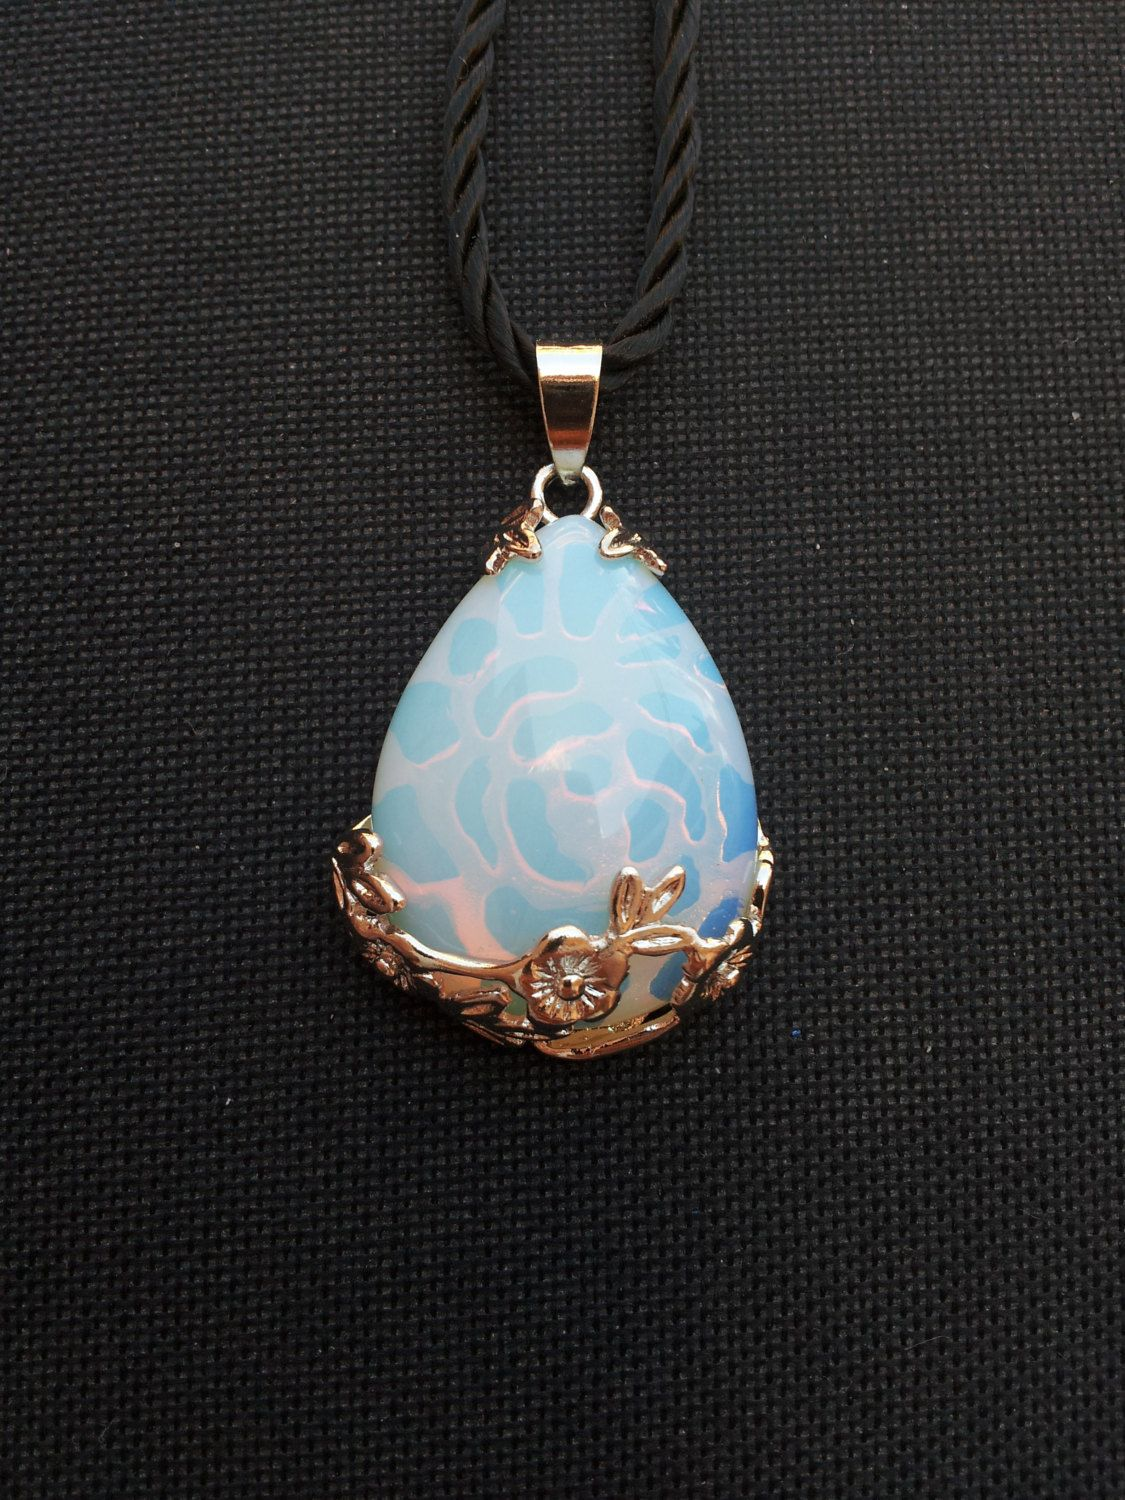 cancer heart pendant opalite